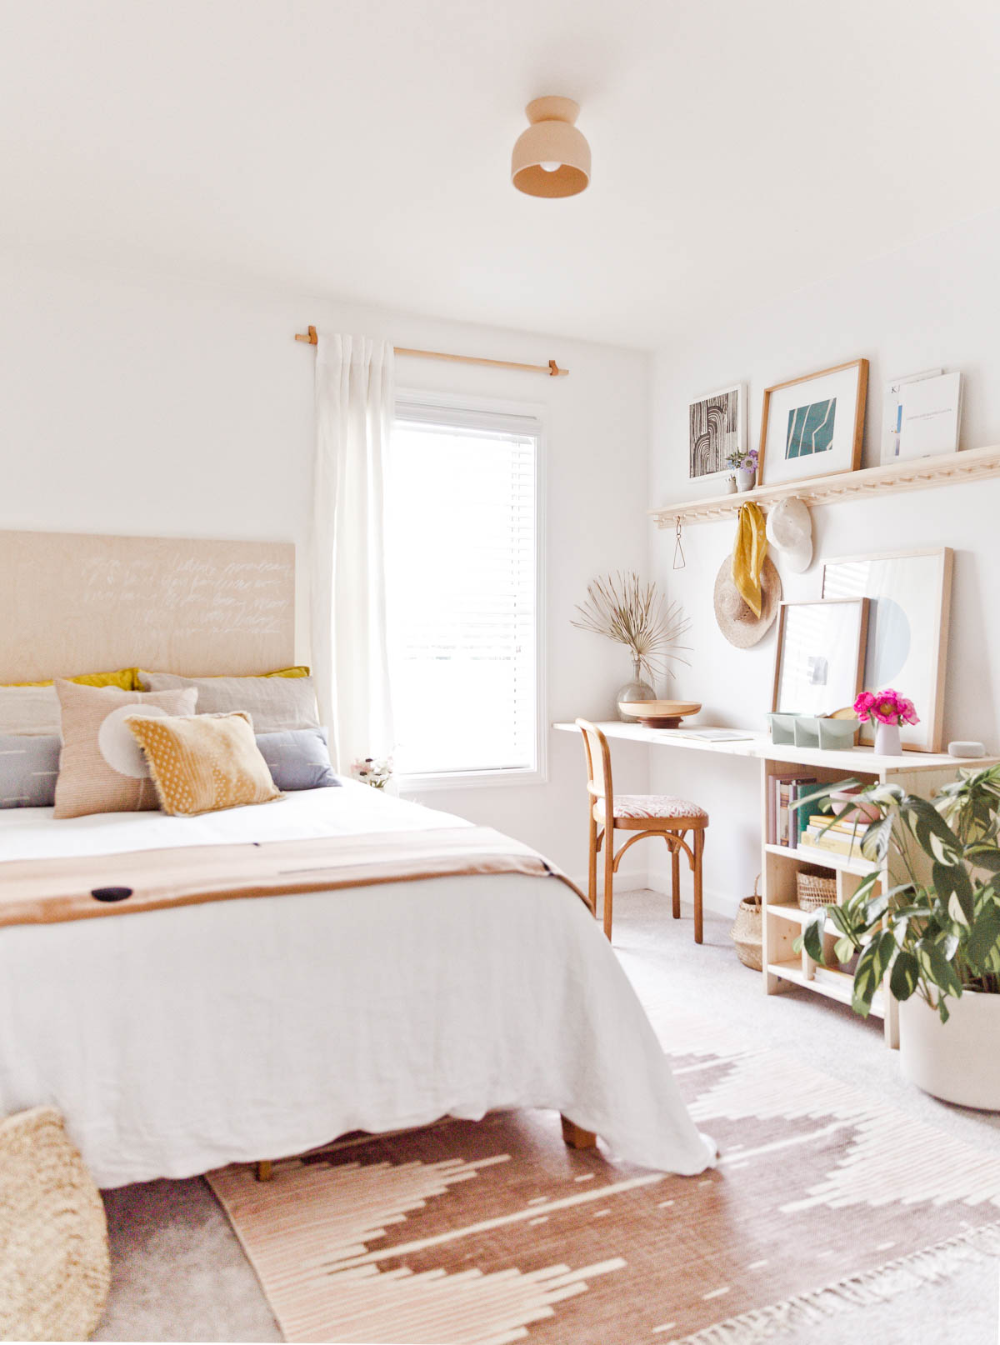 Interior Design Of Guest Room: Room Reveal: A Guest Room / Home Office With Renter